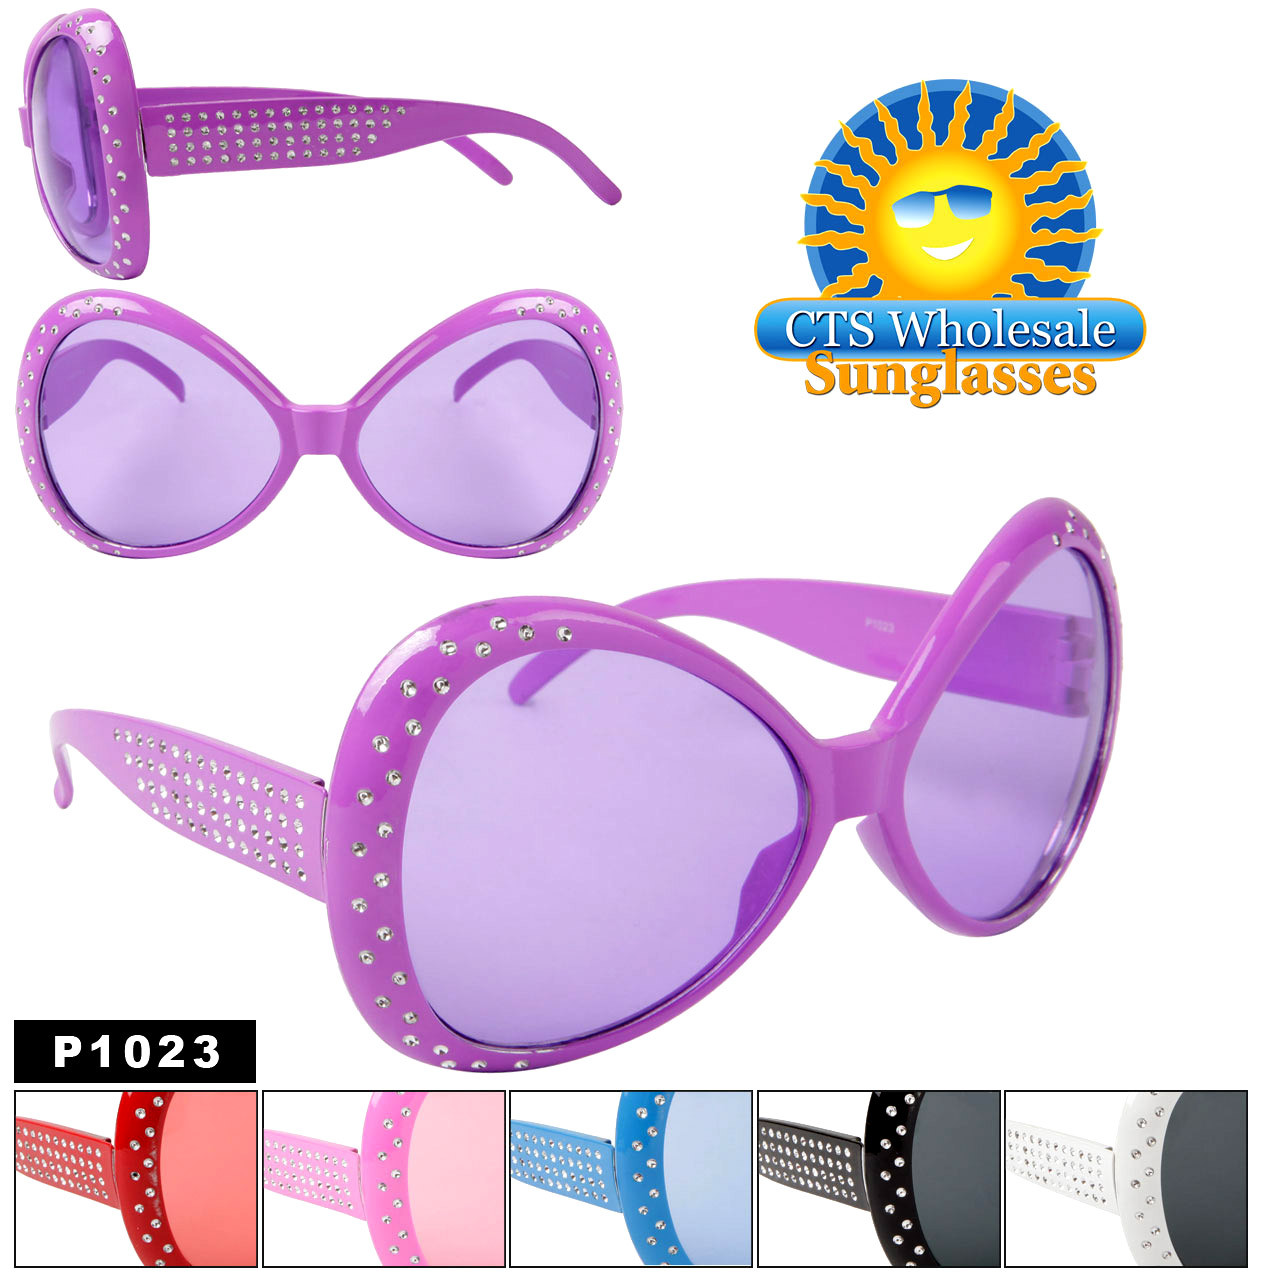 """Party Glasses """"Huge Sunglasses""""  ~ P1023 (12 pcs.) With Rhinestones (Assorted Colors)"""